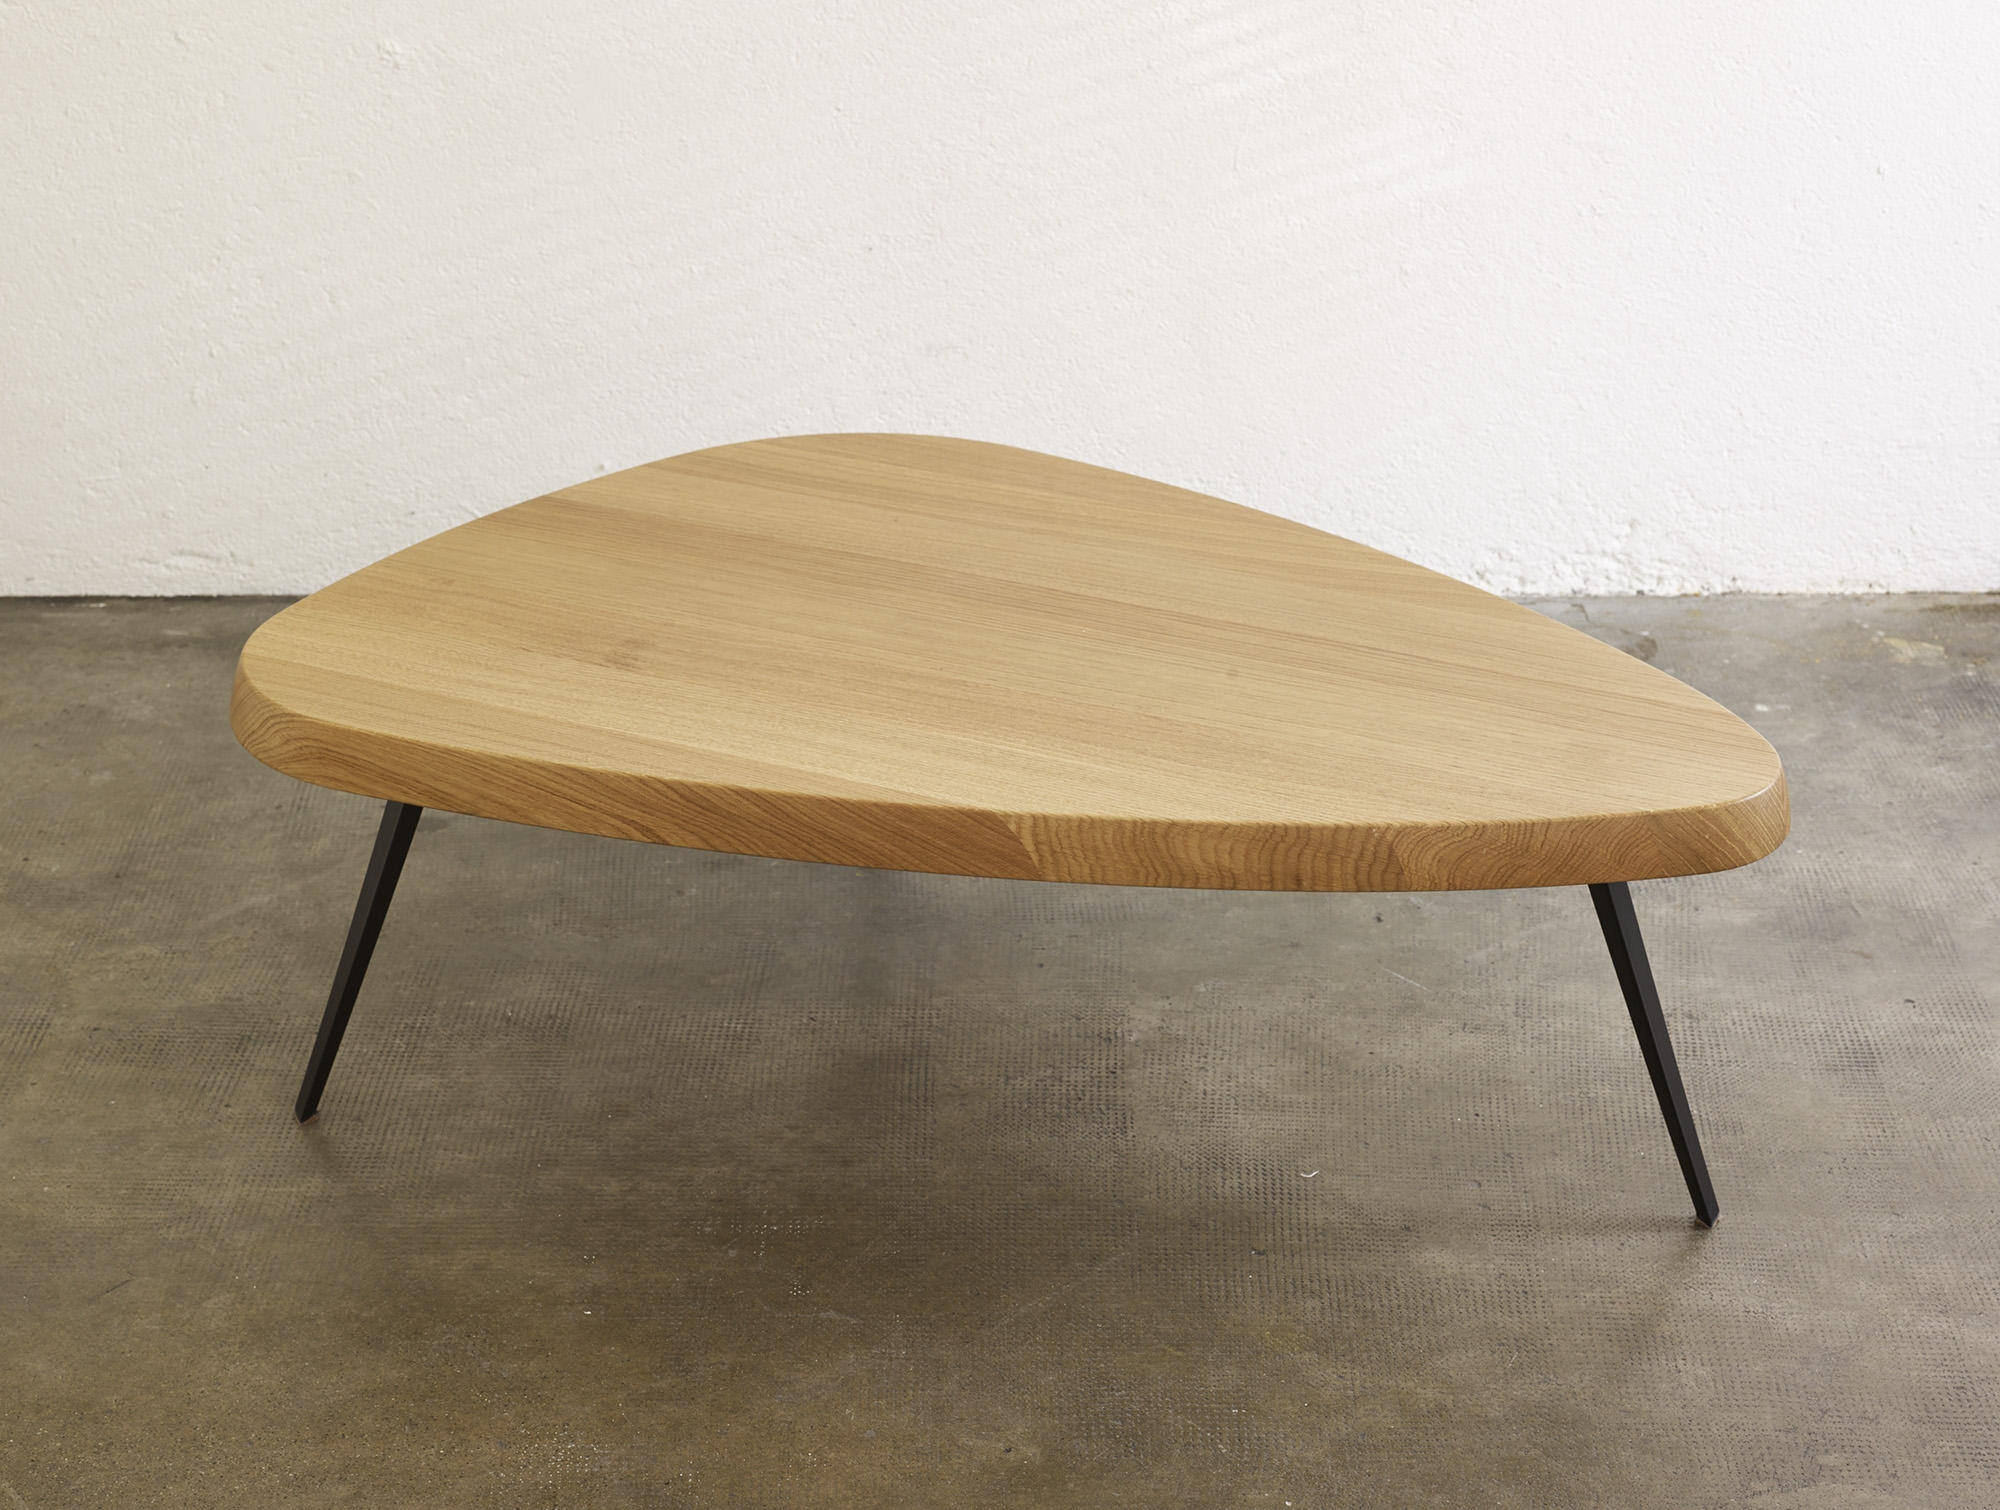 table-basse-527-de-charlotte-perriand-ed-cassina-image-03